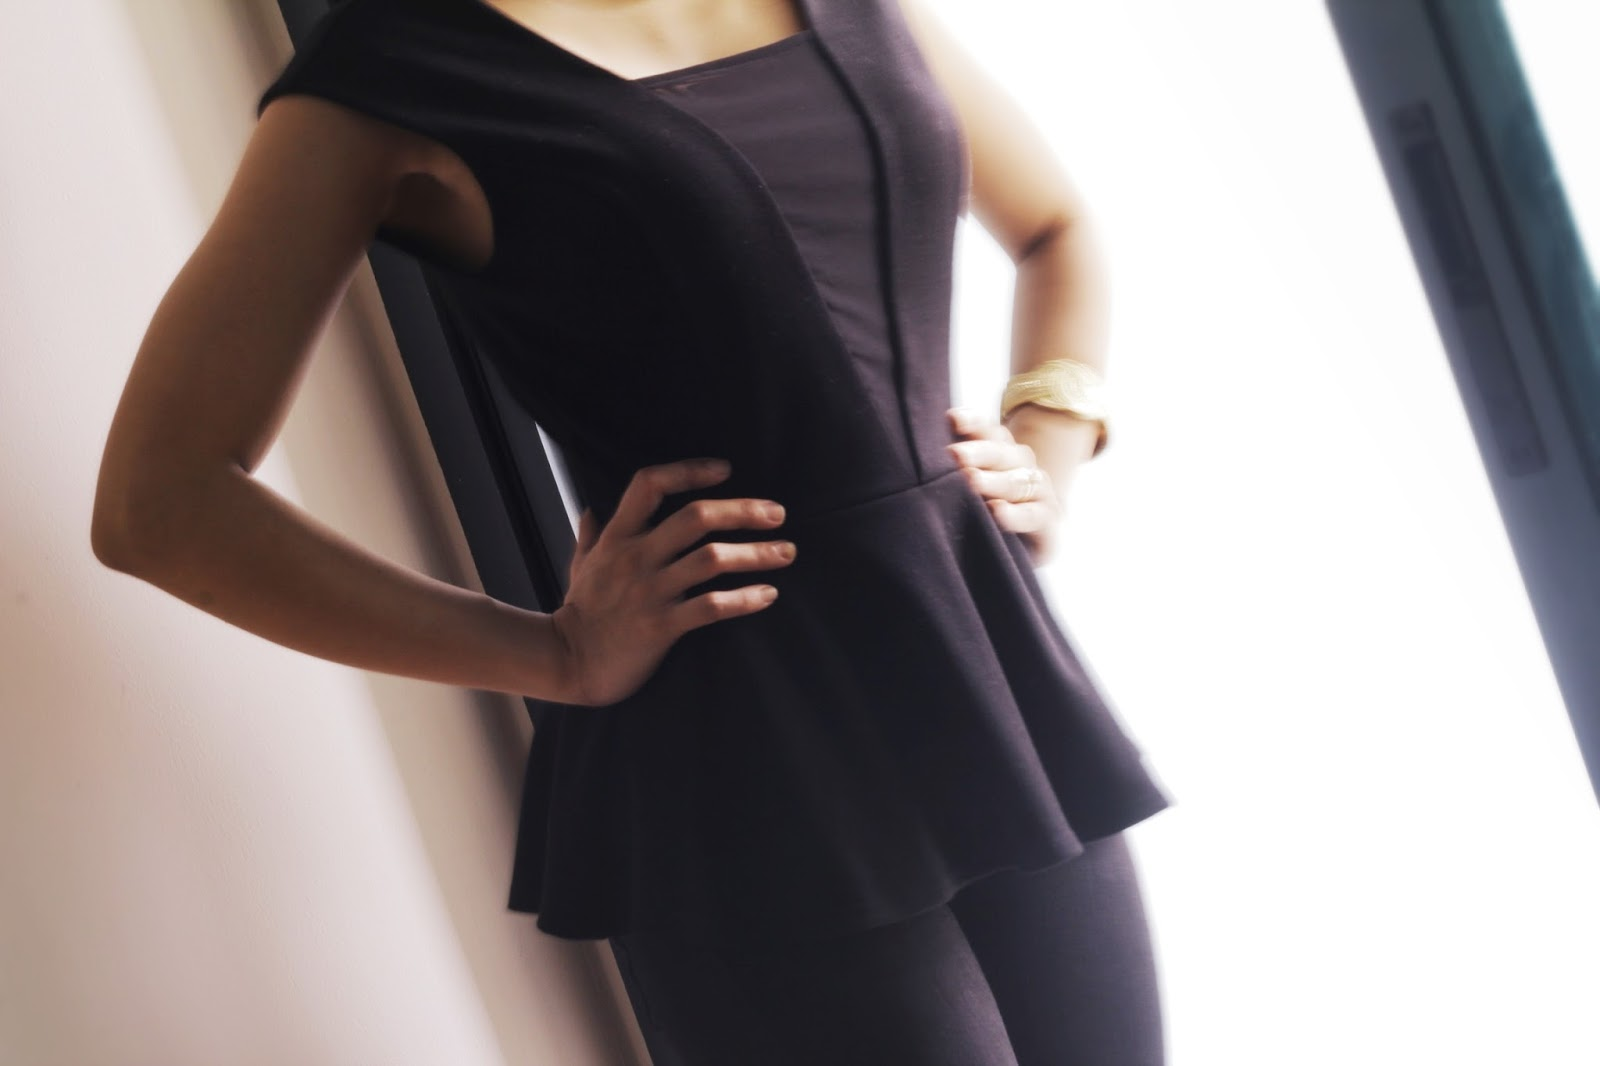 workwear, forever 21 peplum, outfit to work, black